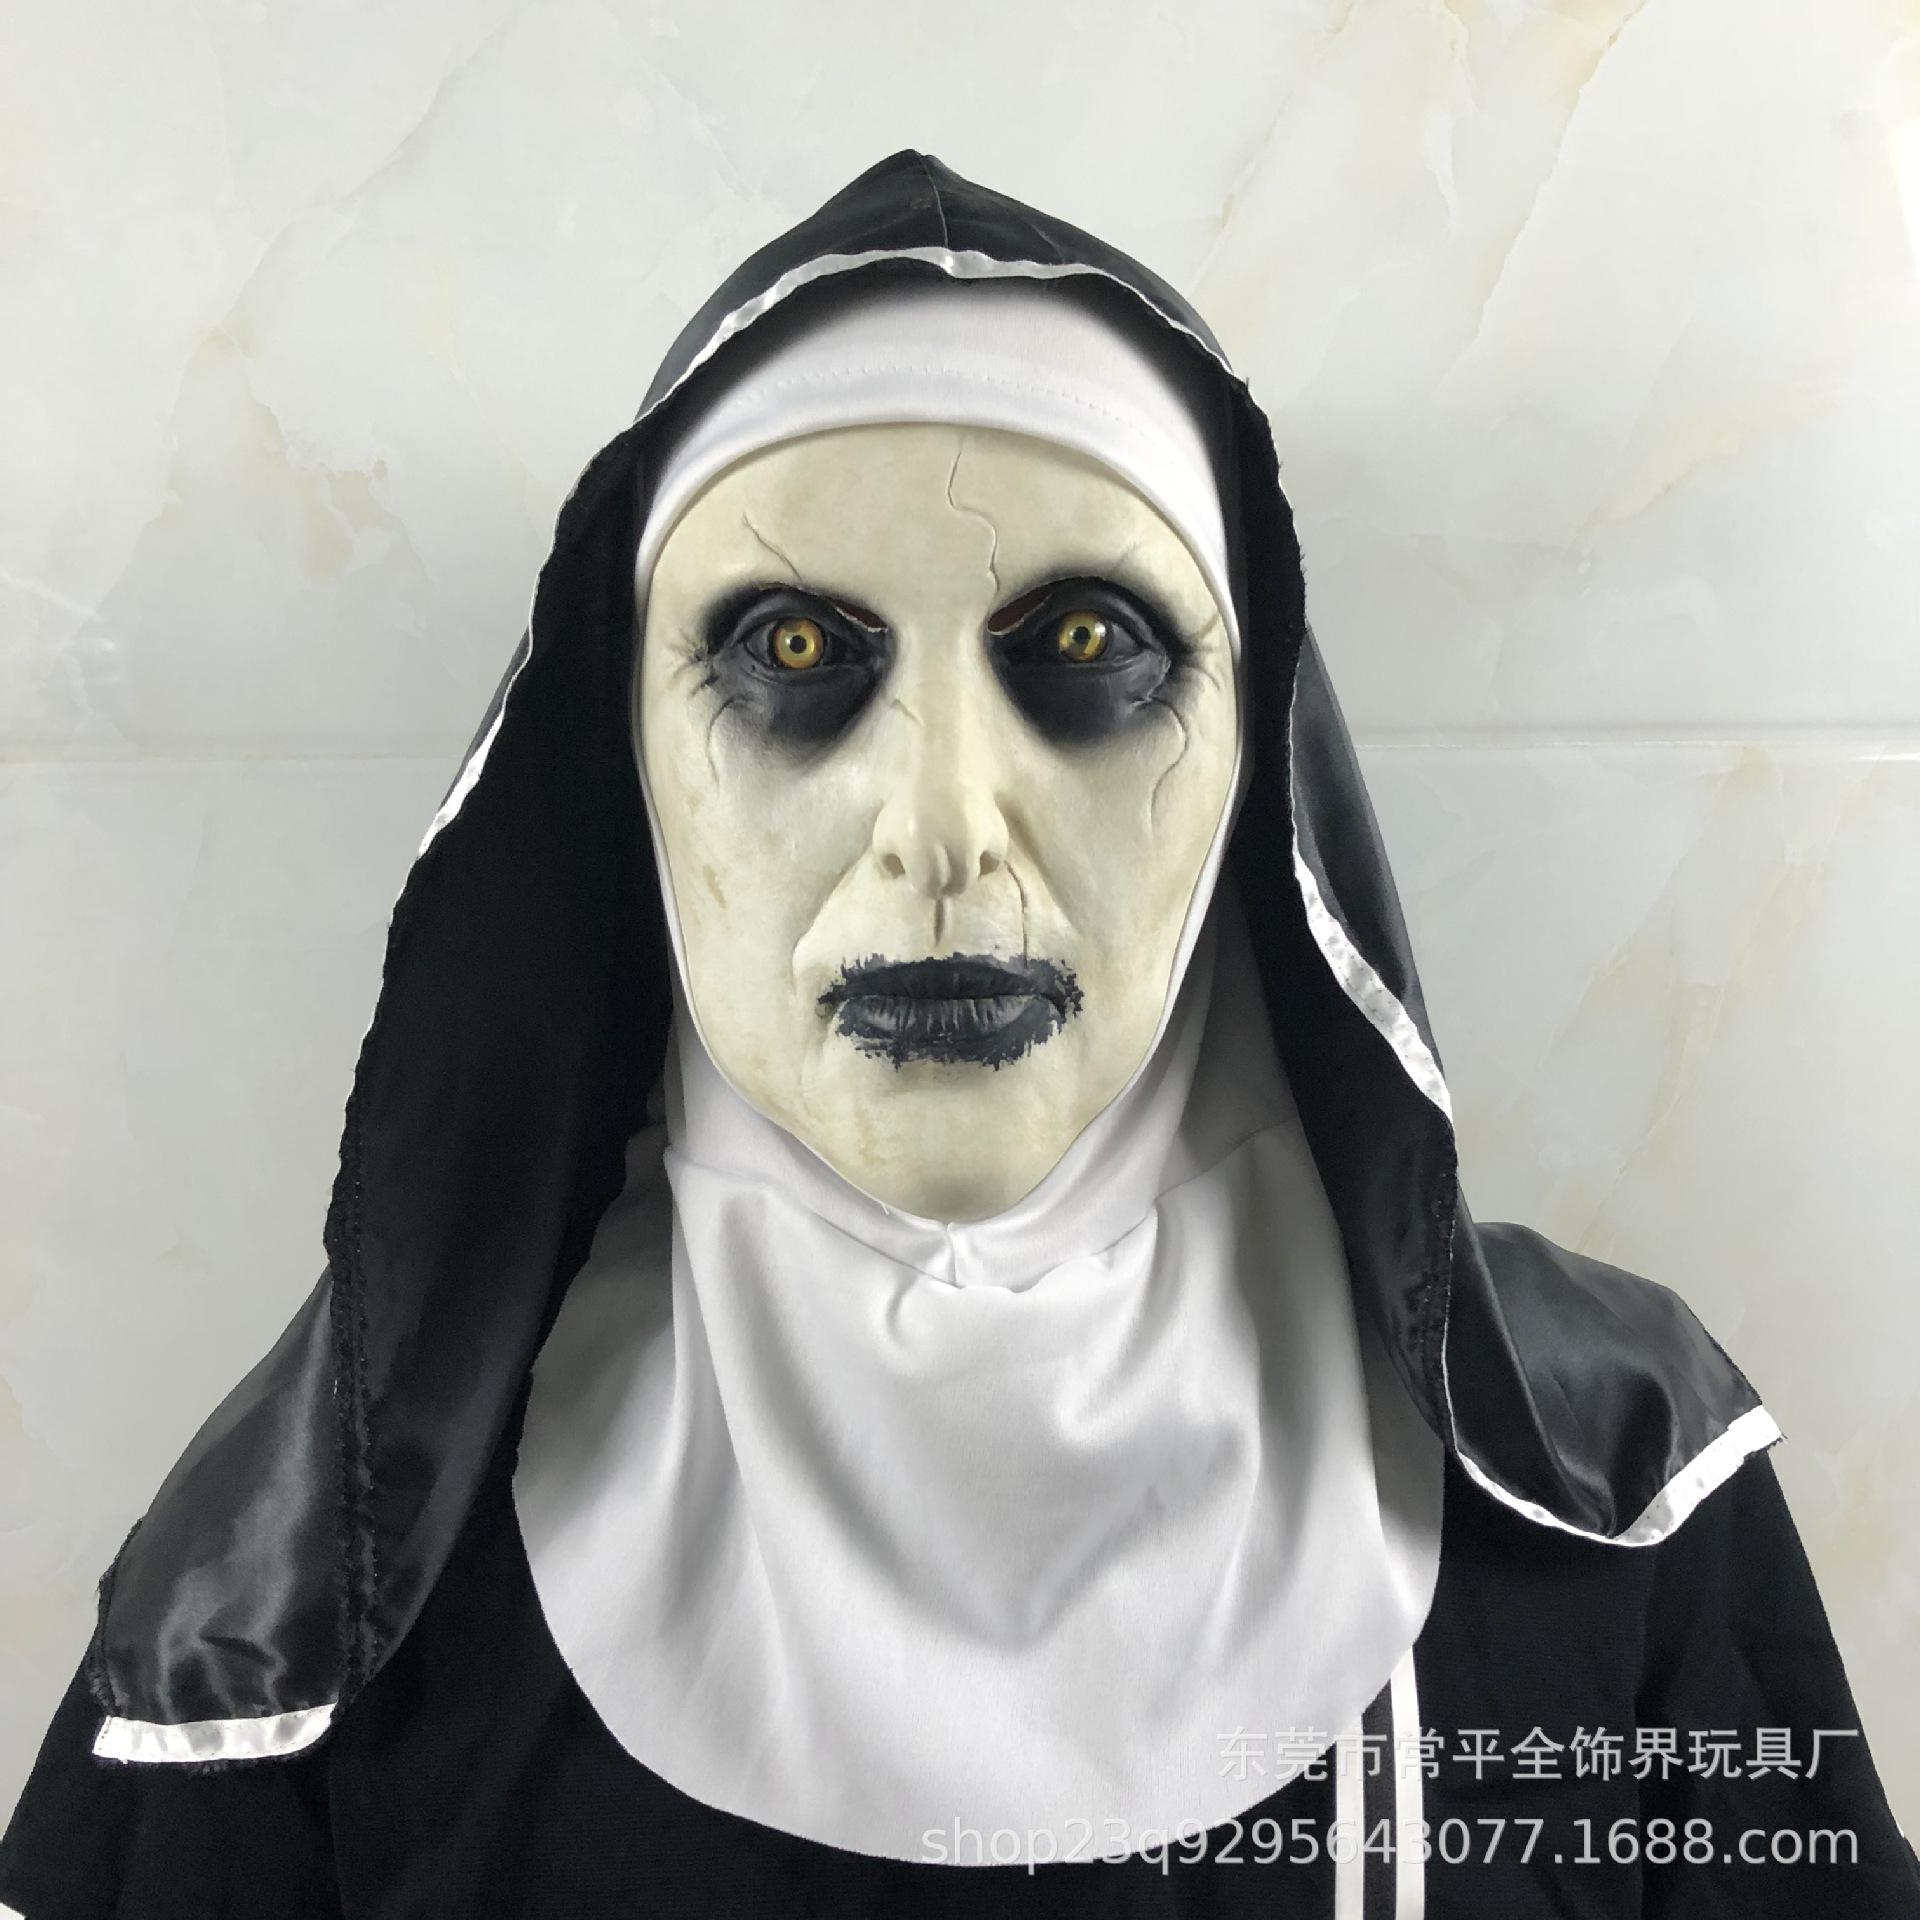 the conjuring 2 horror nun mask horror scary man